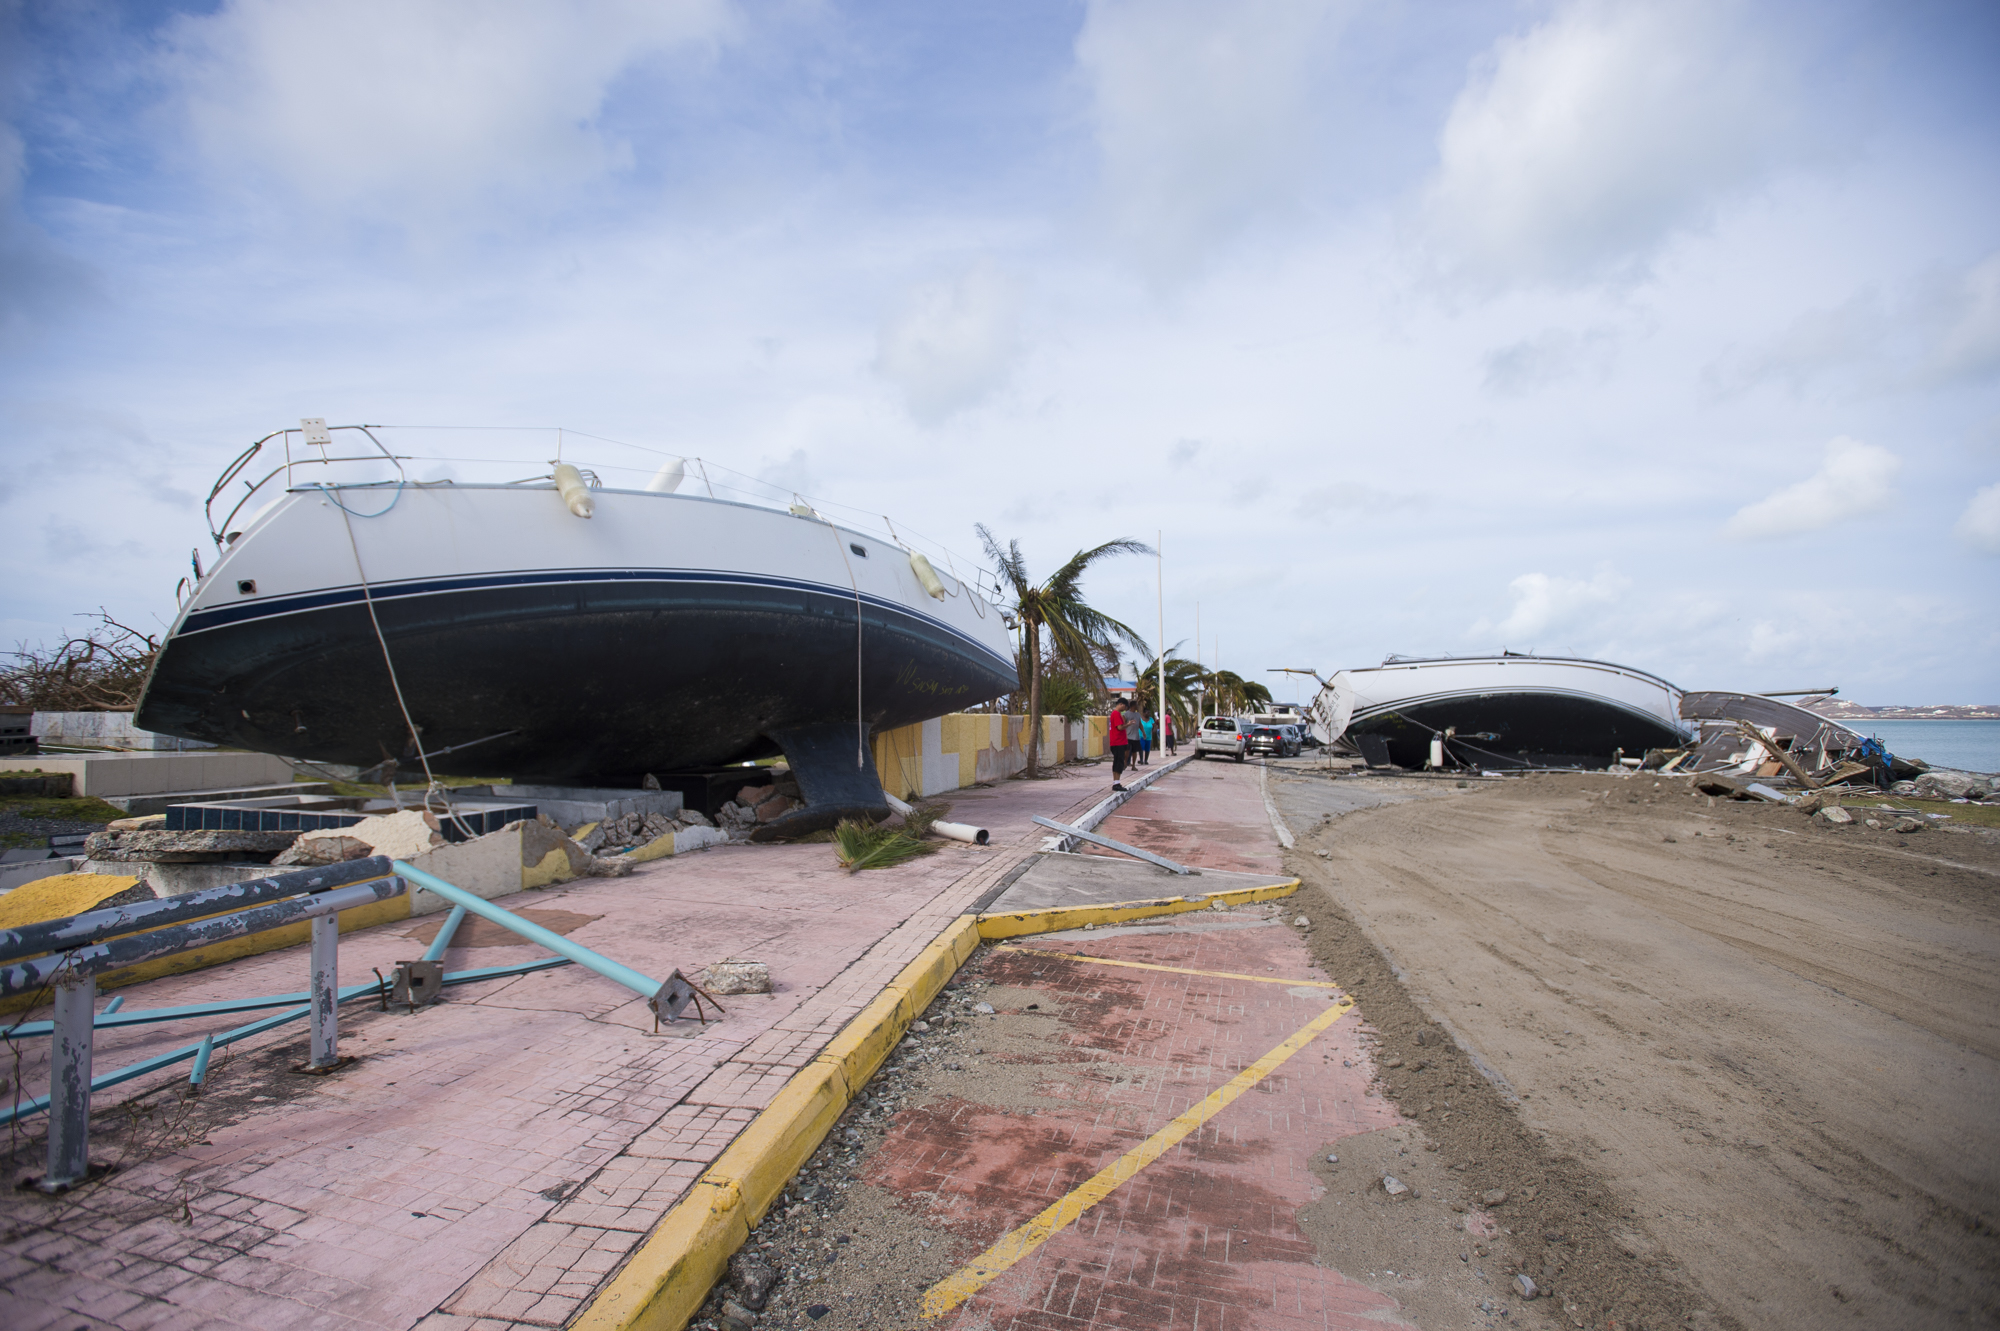 Some ships washed ashore in Saint-Martin in the northeast Caribbean, after the passage of Hurricane Irma. Photo by Lionel Chamoiseau/AFP/Getty Images